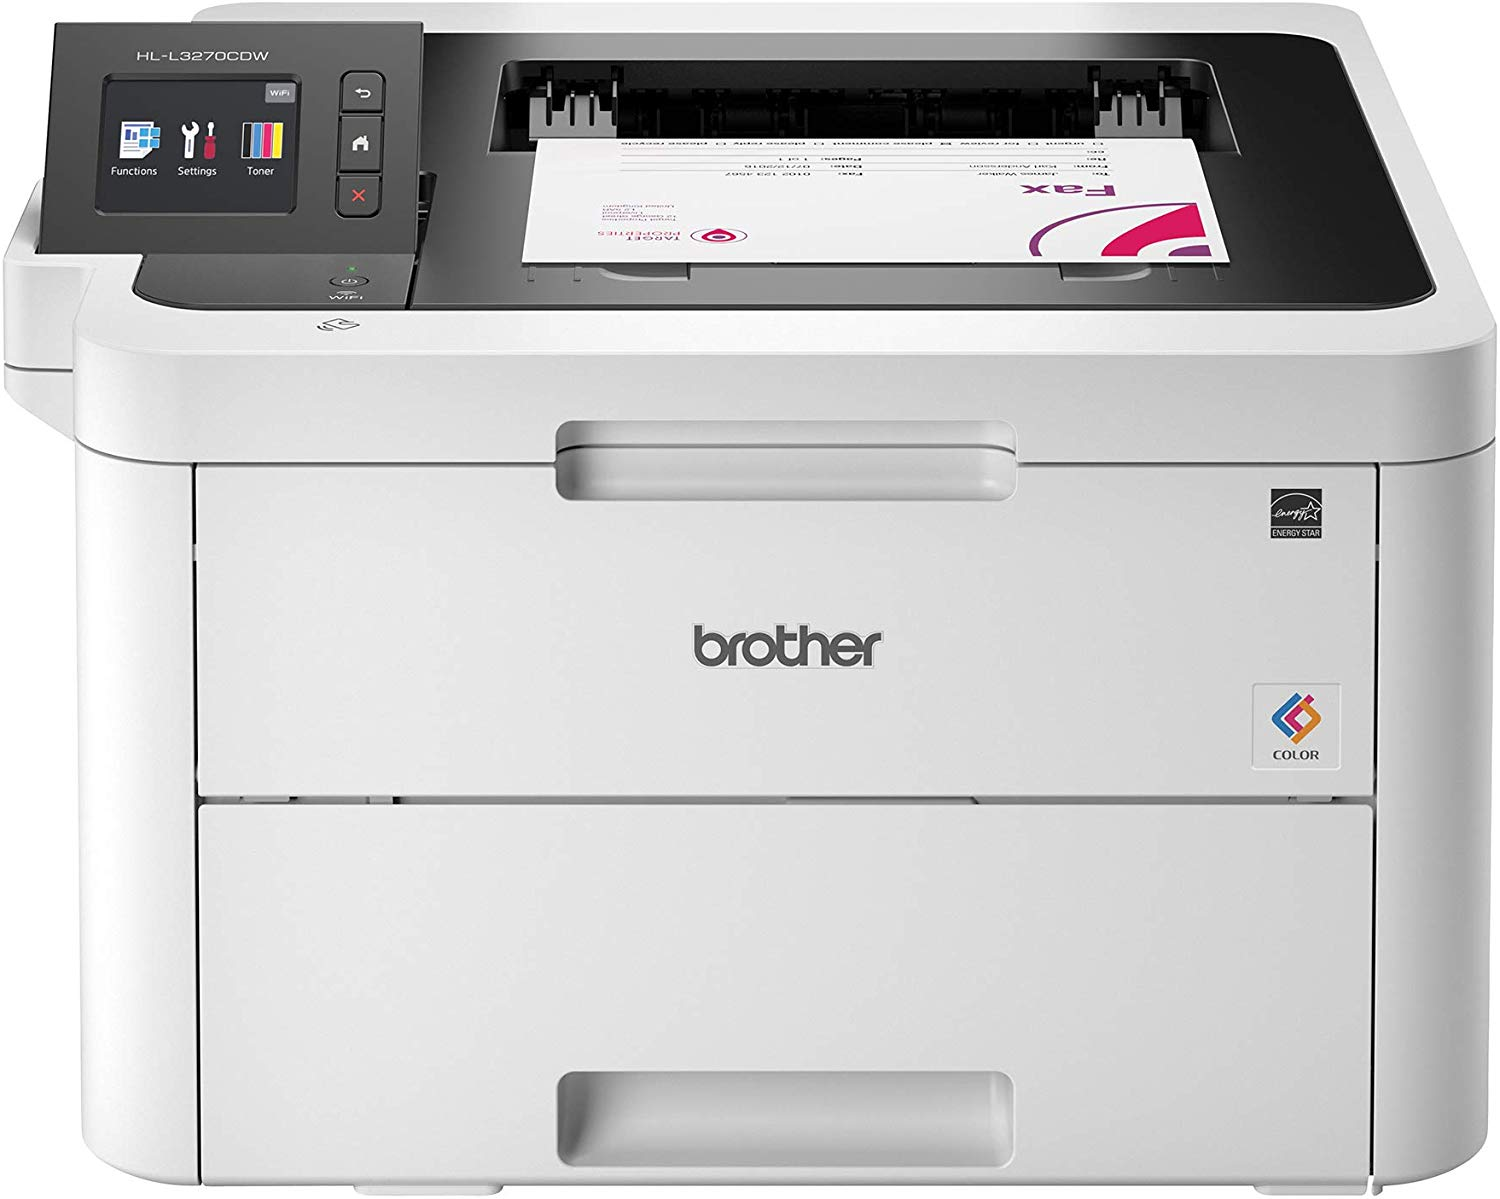 Brother HL-L3270CDW - Affordable Printers